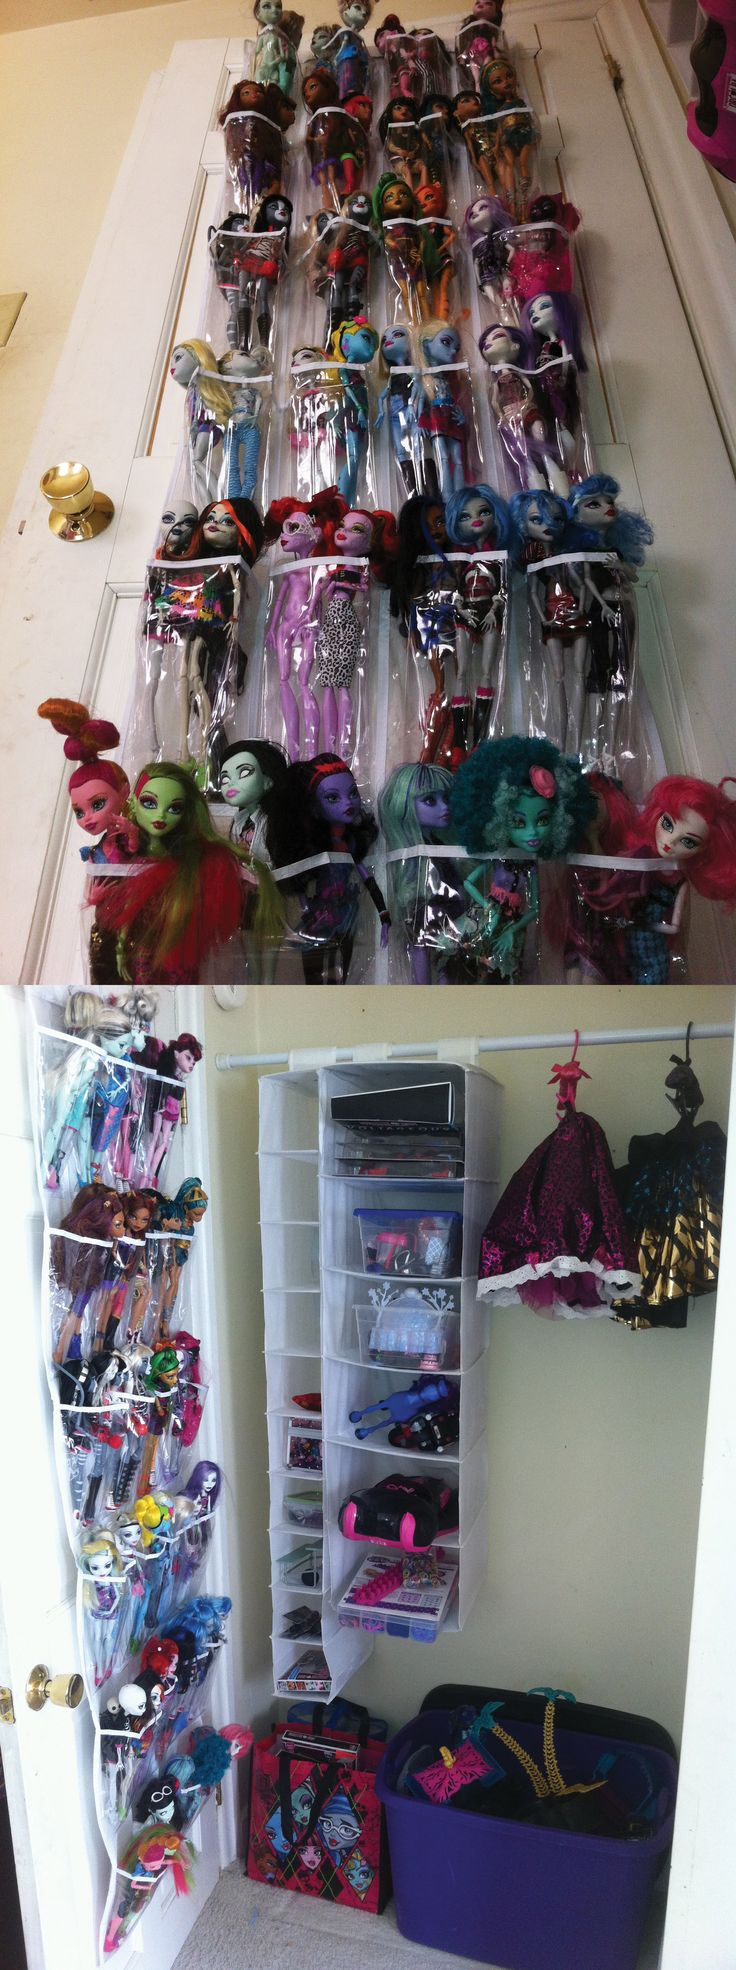 Great way to store all of those Monster High dolls, accessories, & clothes!